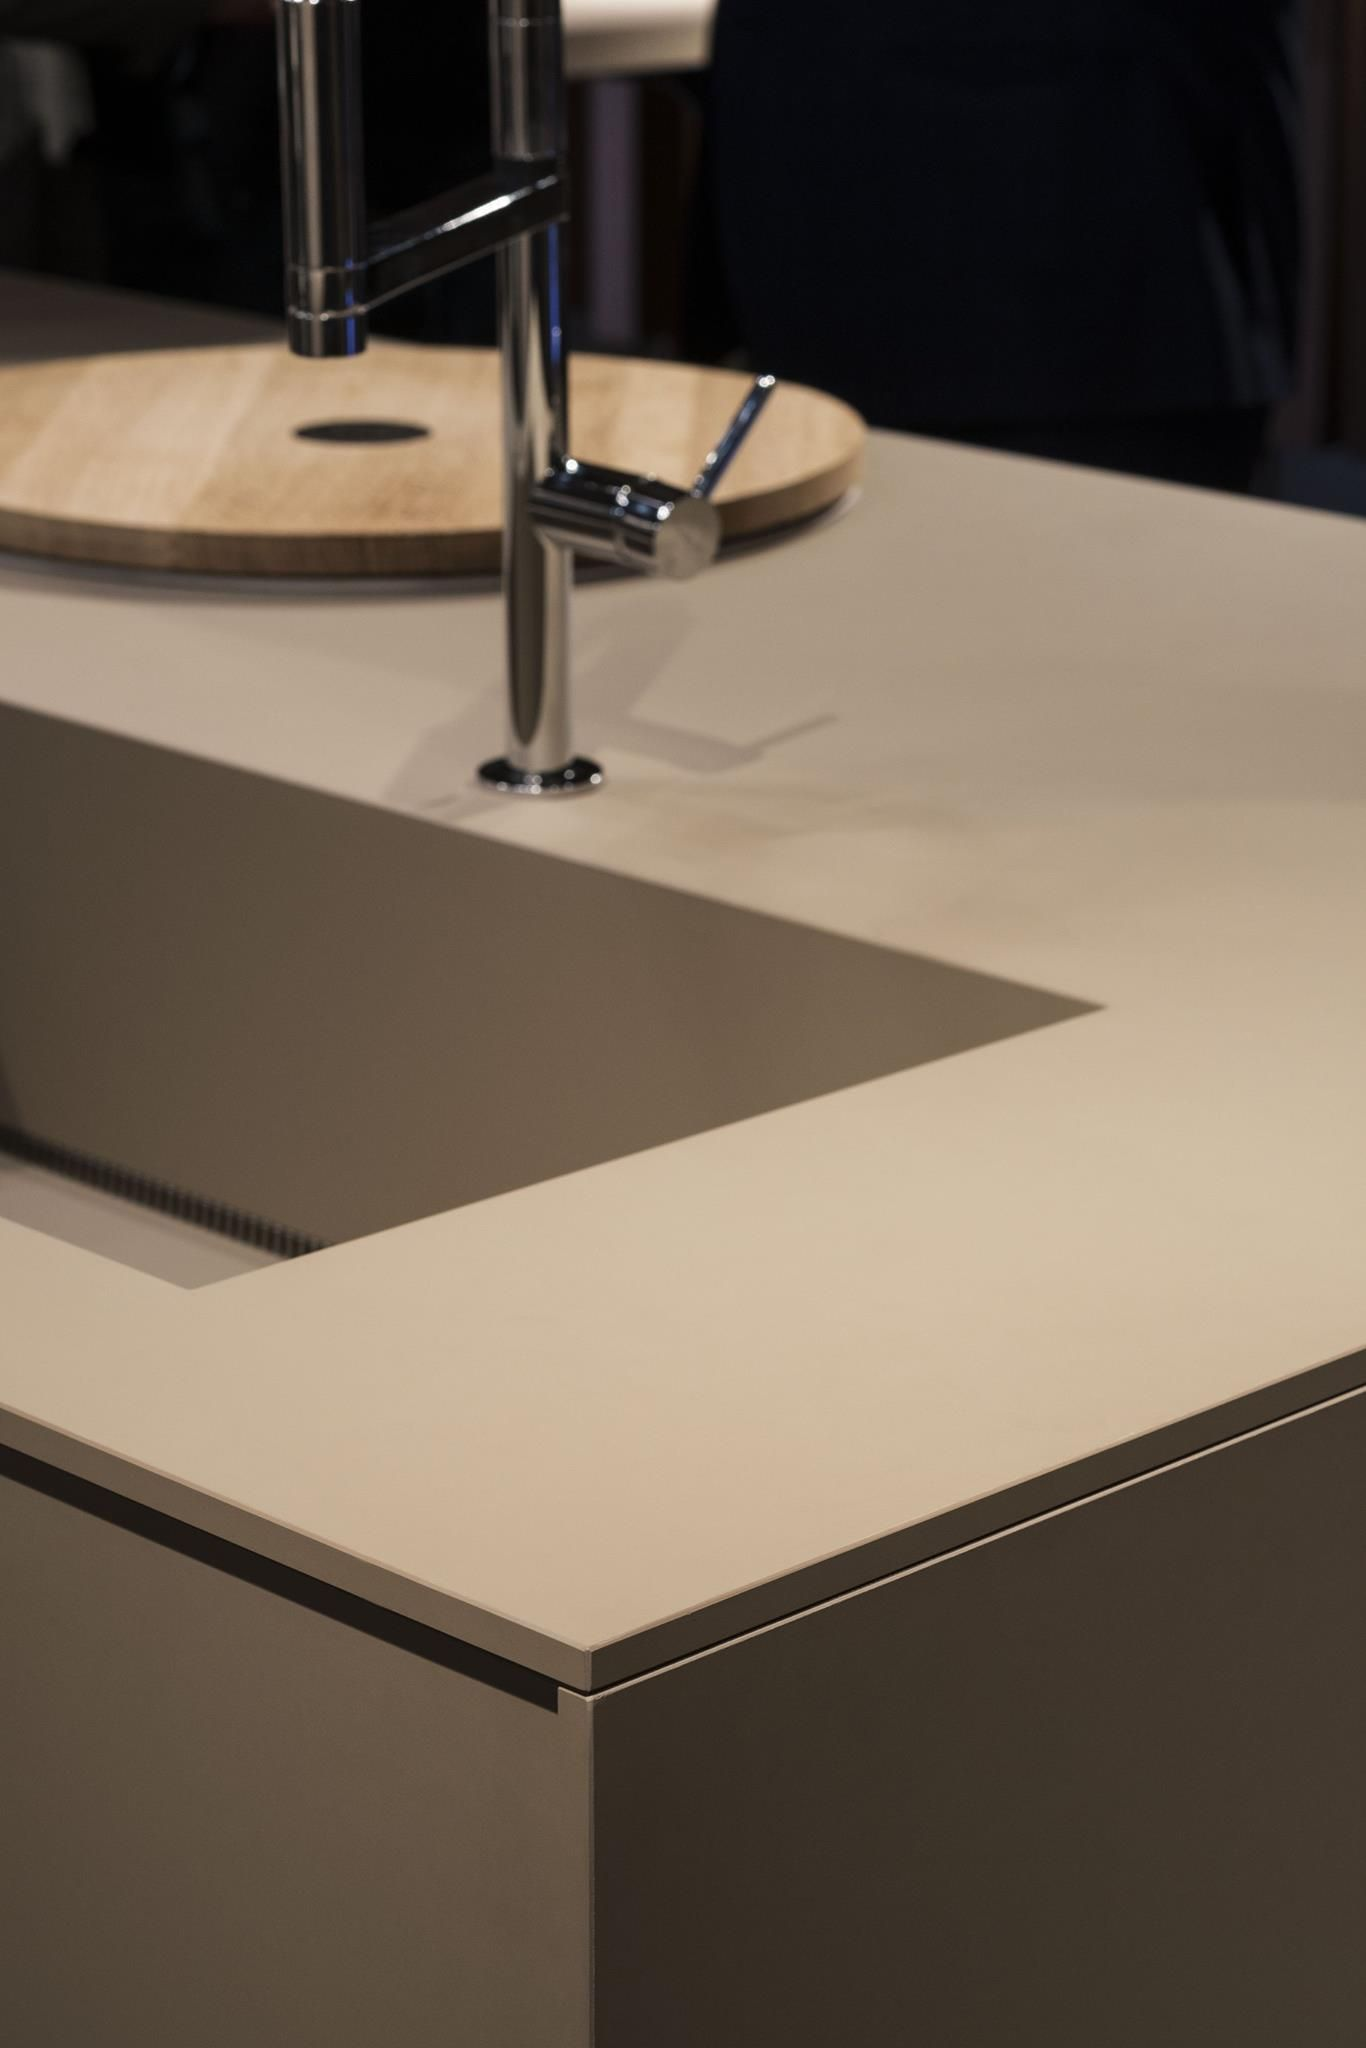 Cucine Low Cost Milano Free Varenna With Cucine Low Cost